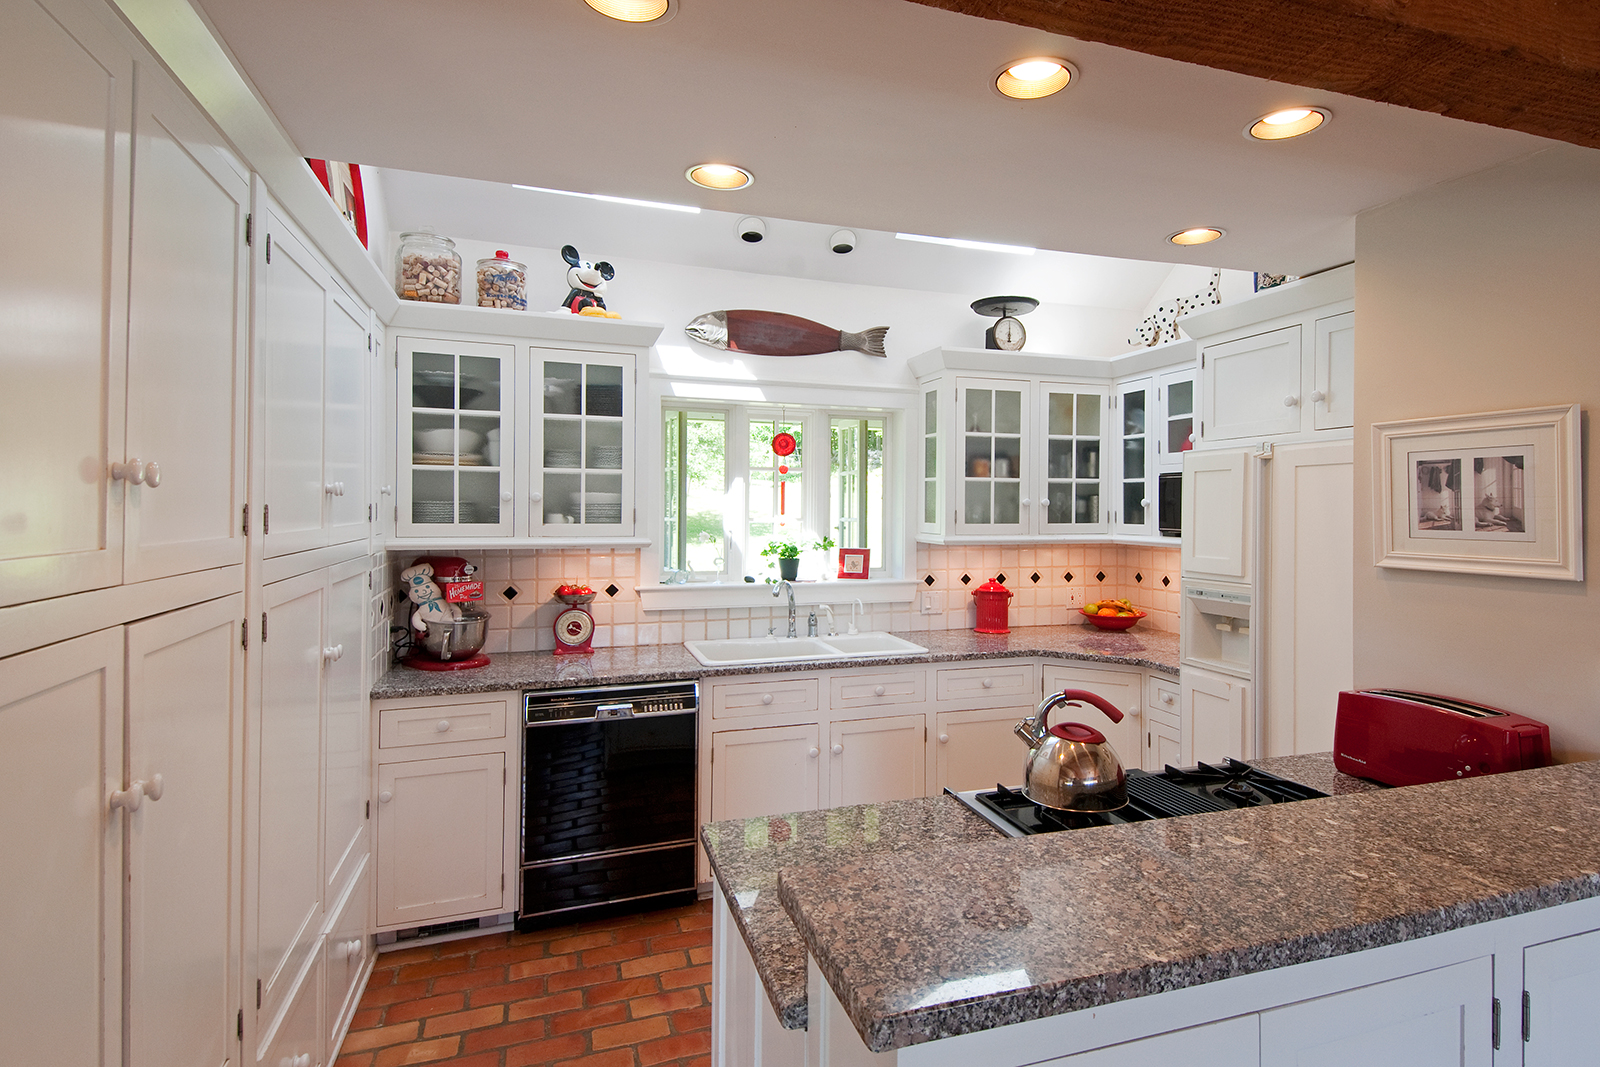 Perfect Kitchen Lighting Design | Kitchen Lighting Design Guidelines | HouseLogic